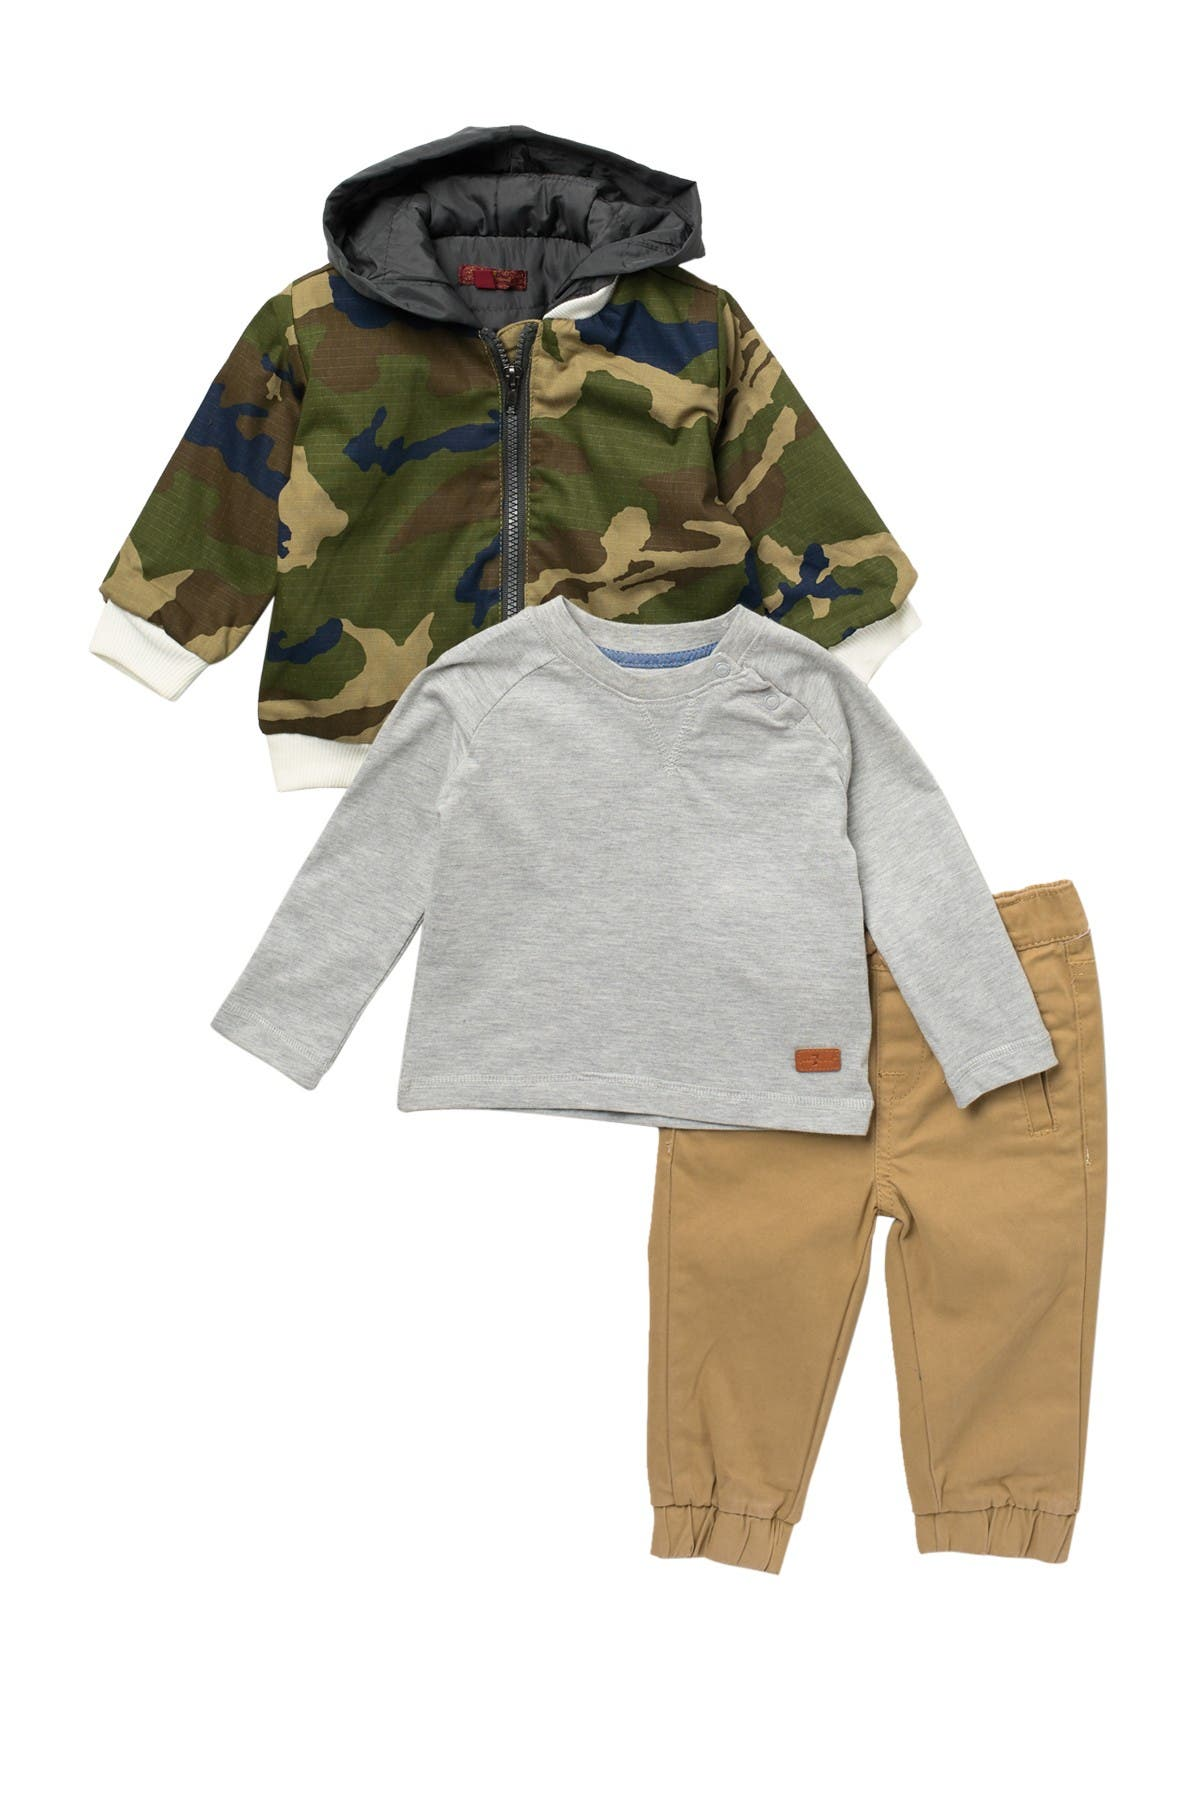 Image of 7 For All Mankind Camo Print Jacket & Joggers Set